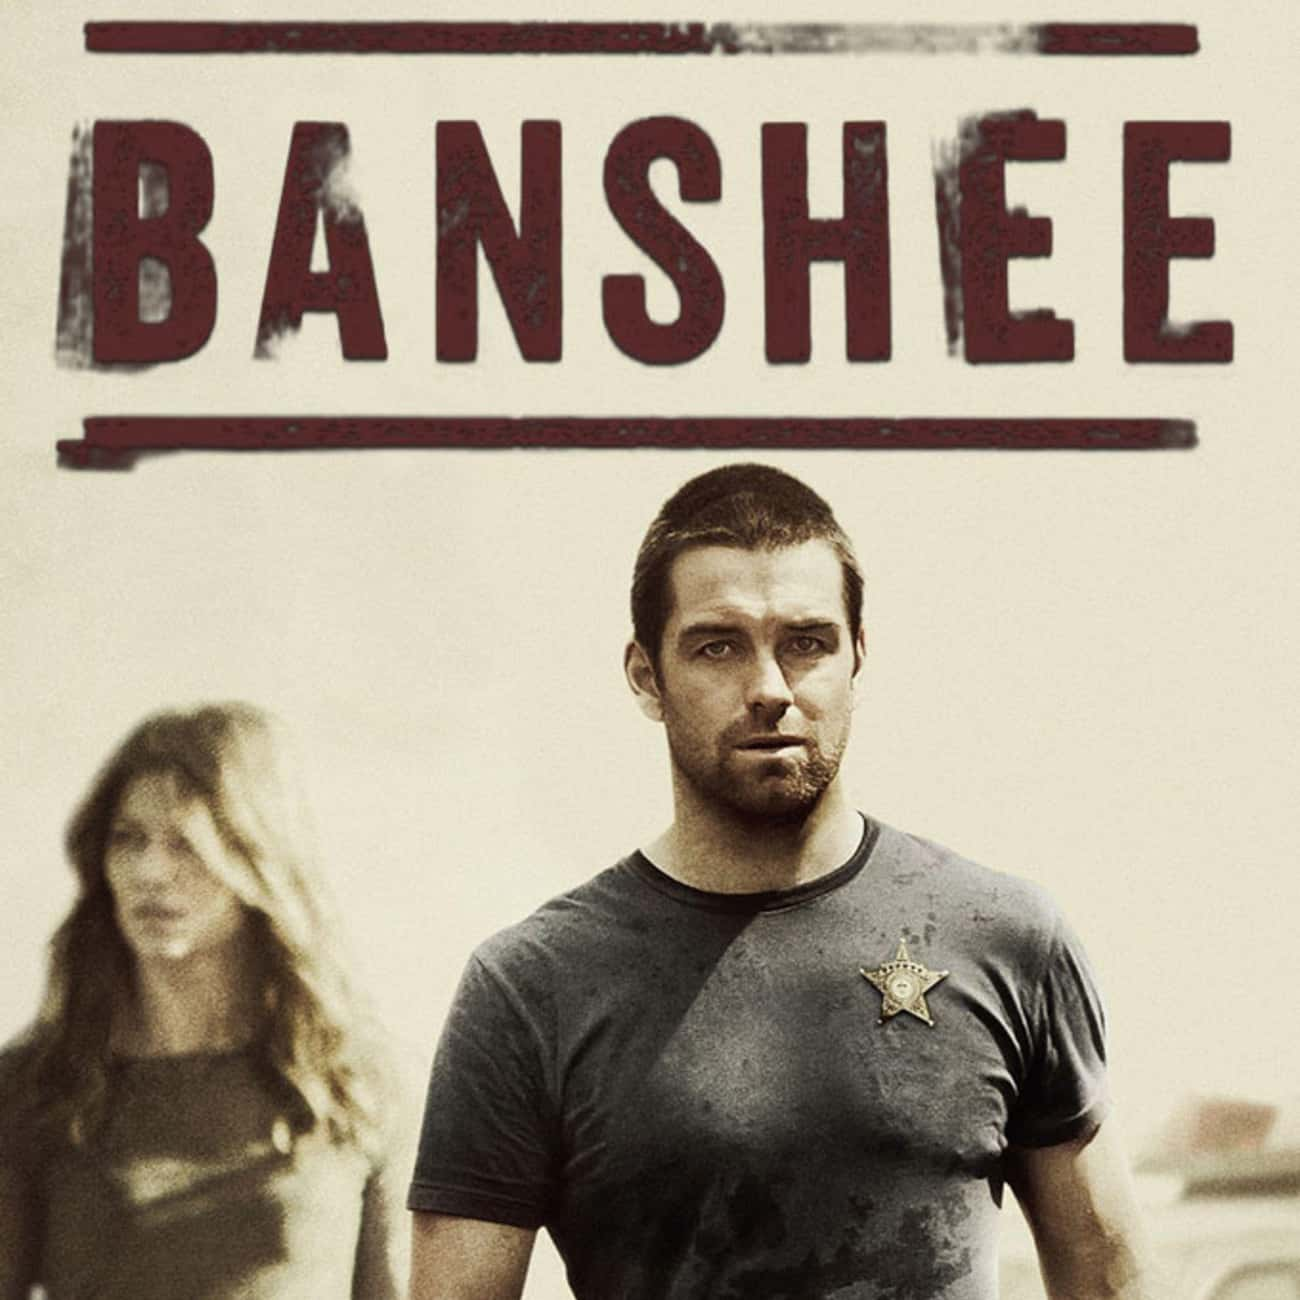 Banshee is listed (or ranked) 4 on the list What To Watch If You Love 'Longmire'